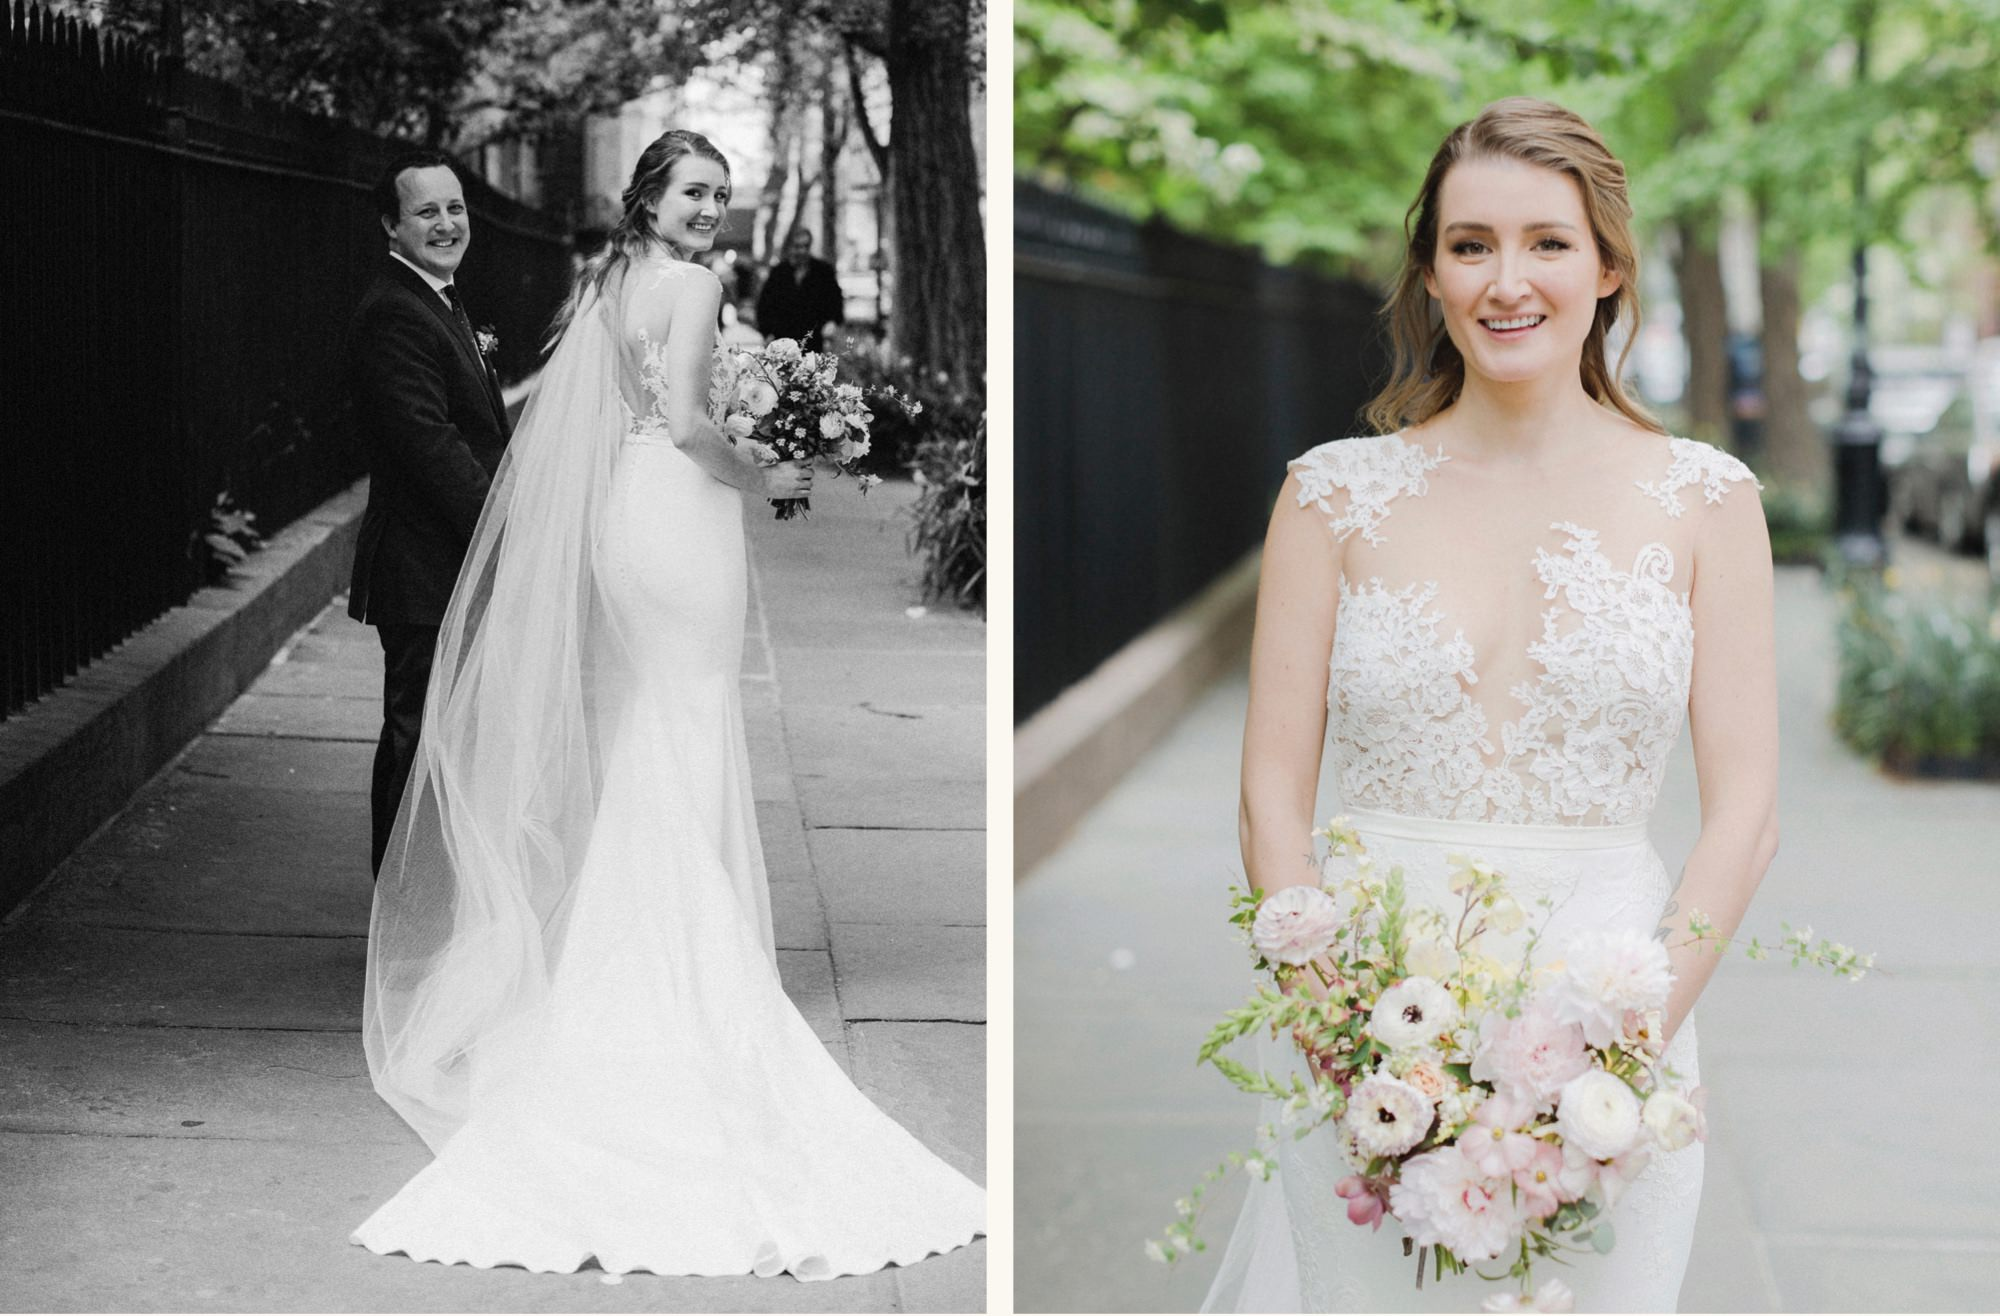 Bride portraits at Gramercy Park